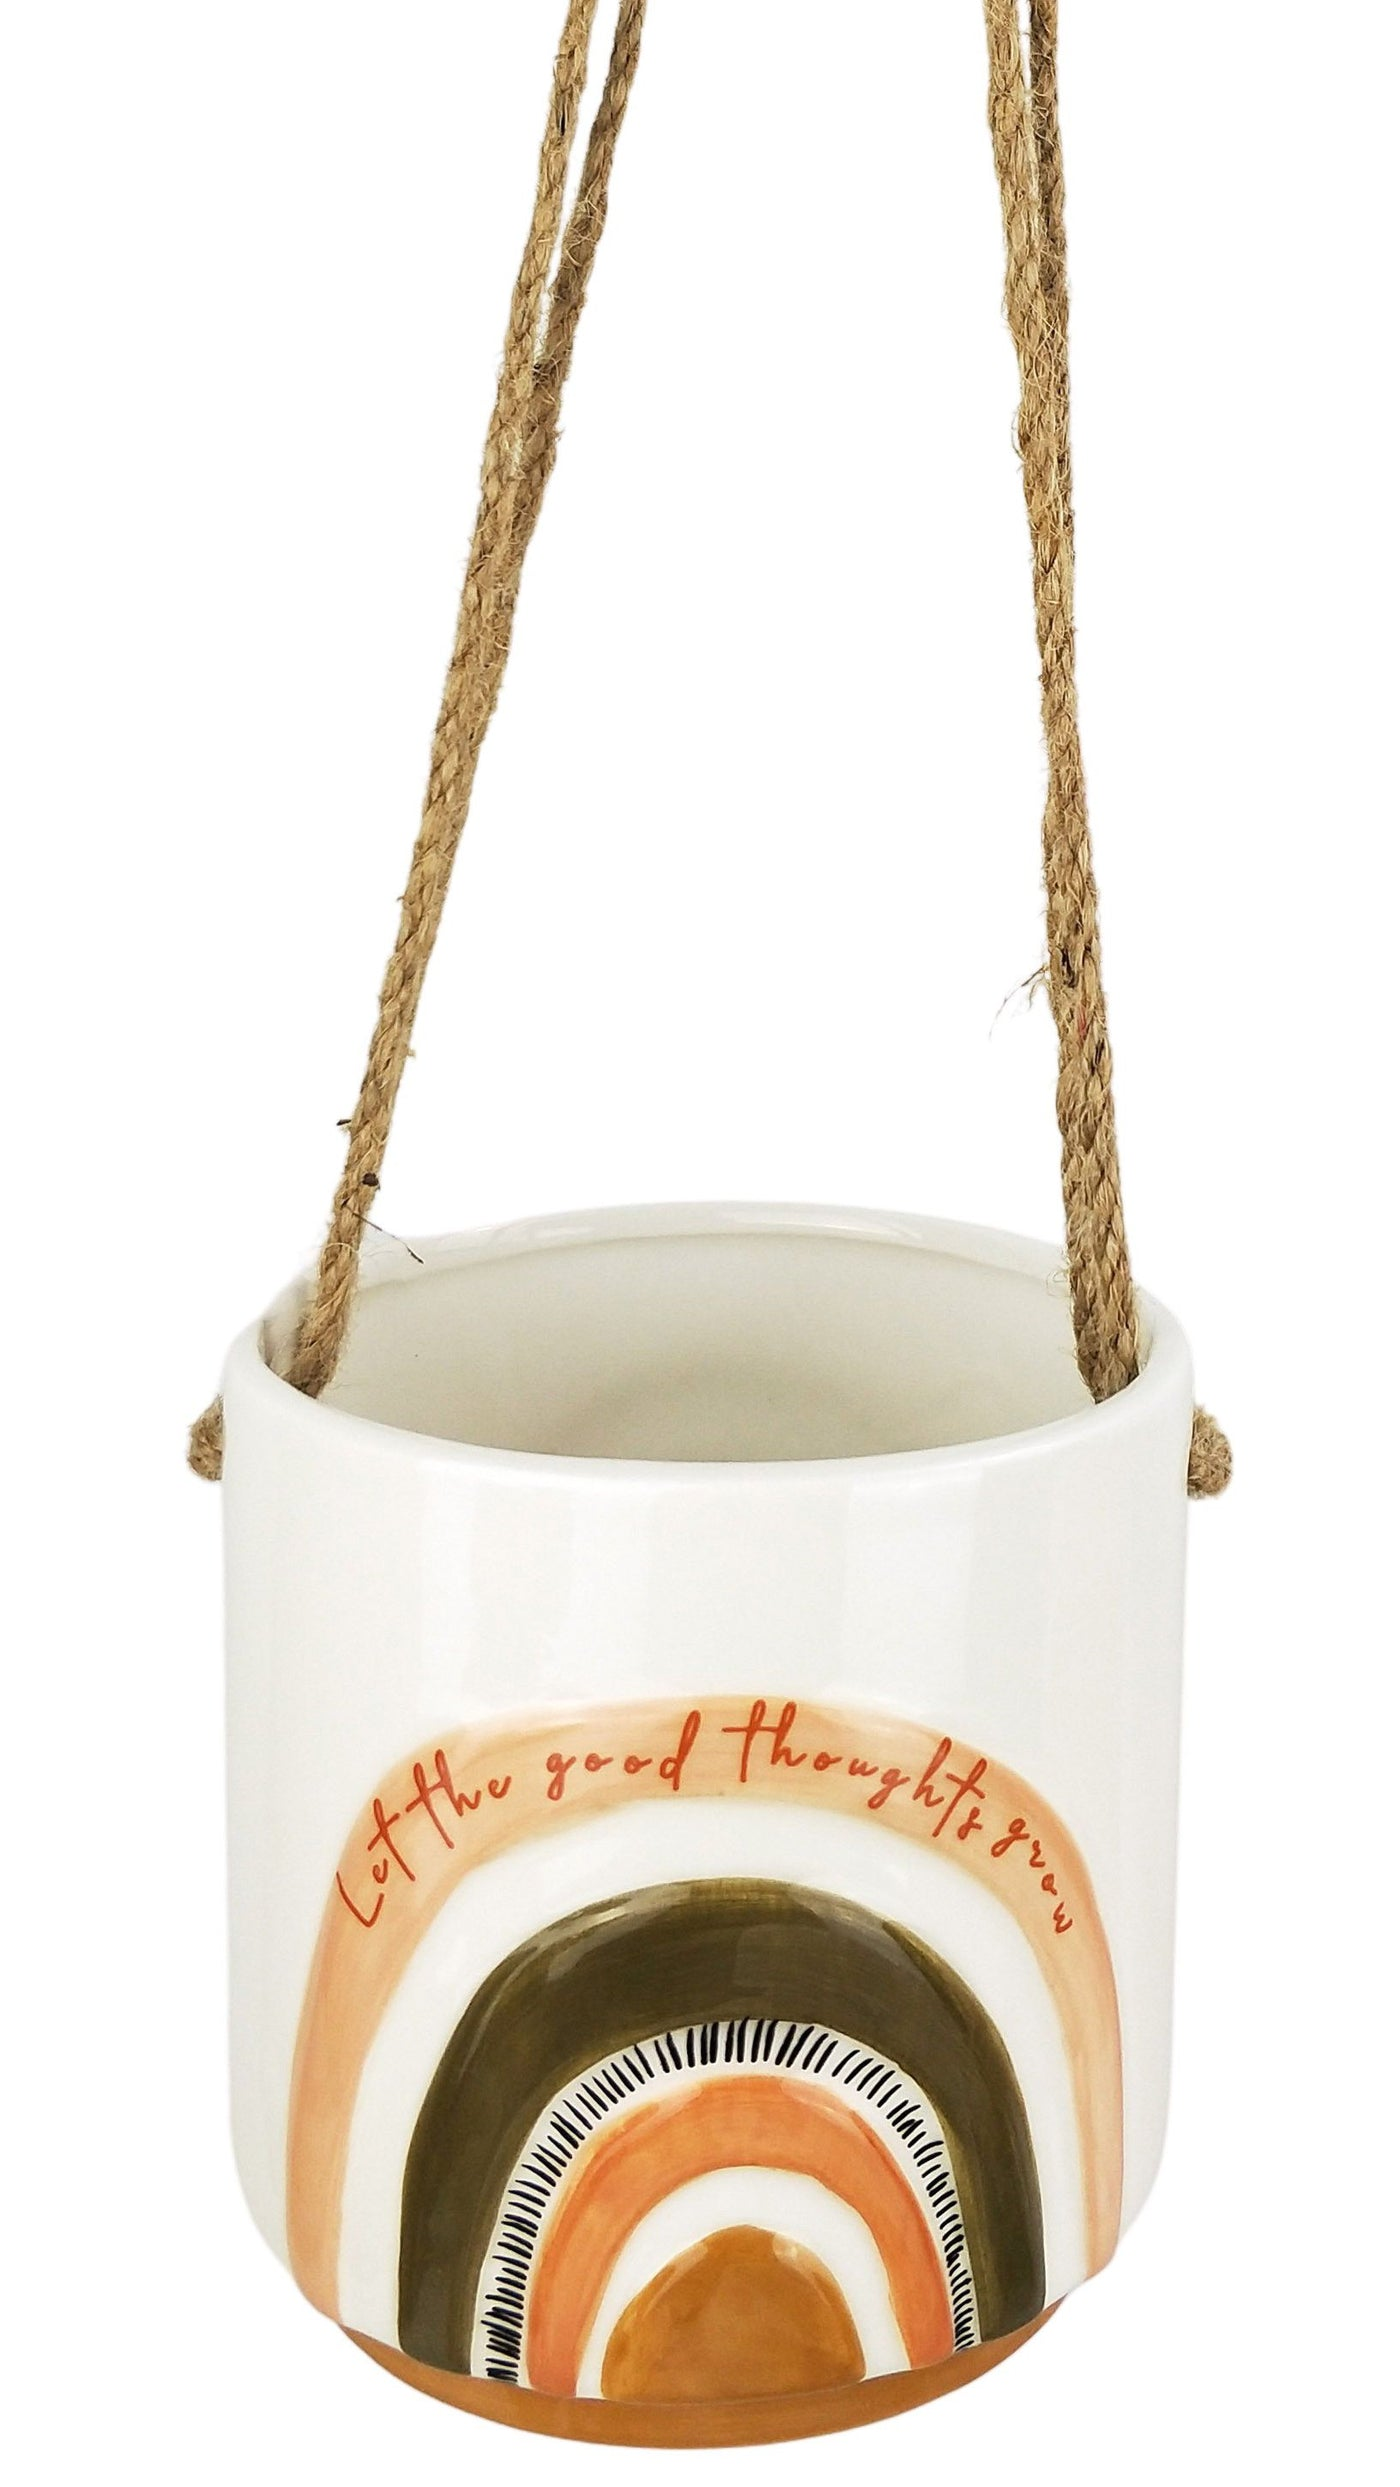 Woodstock Let The Good Thoughts Grow Hanging Planter Small